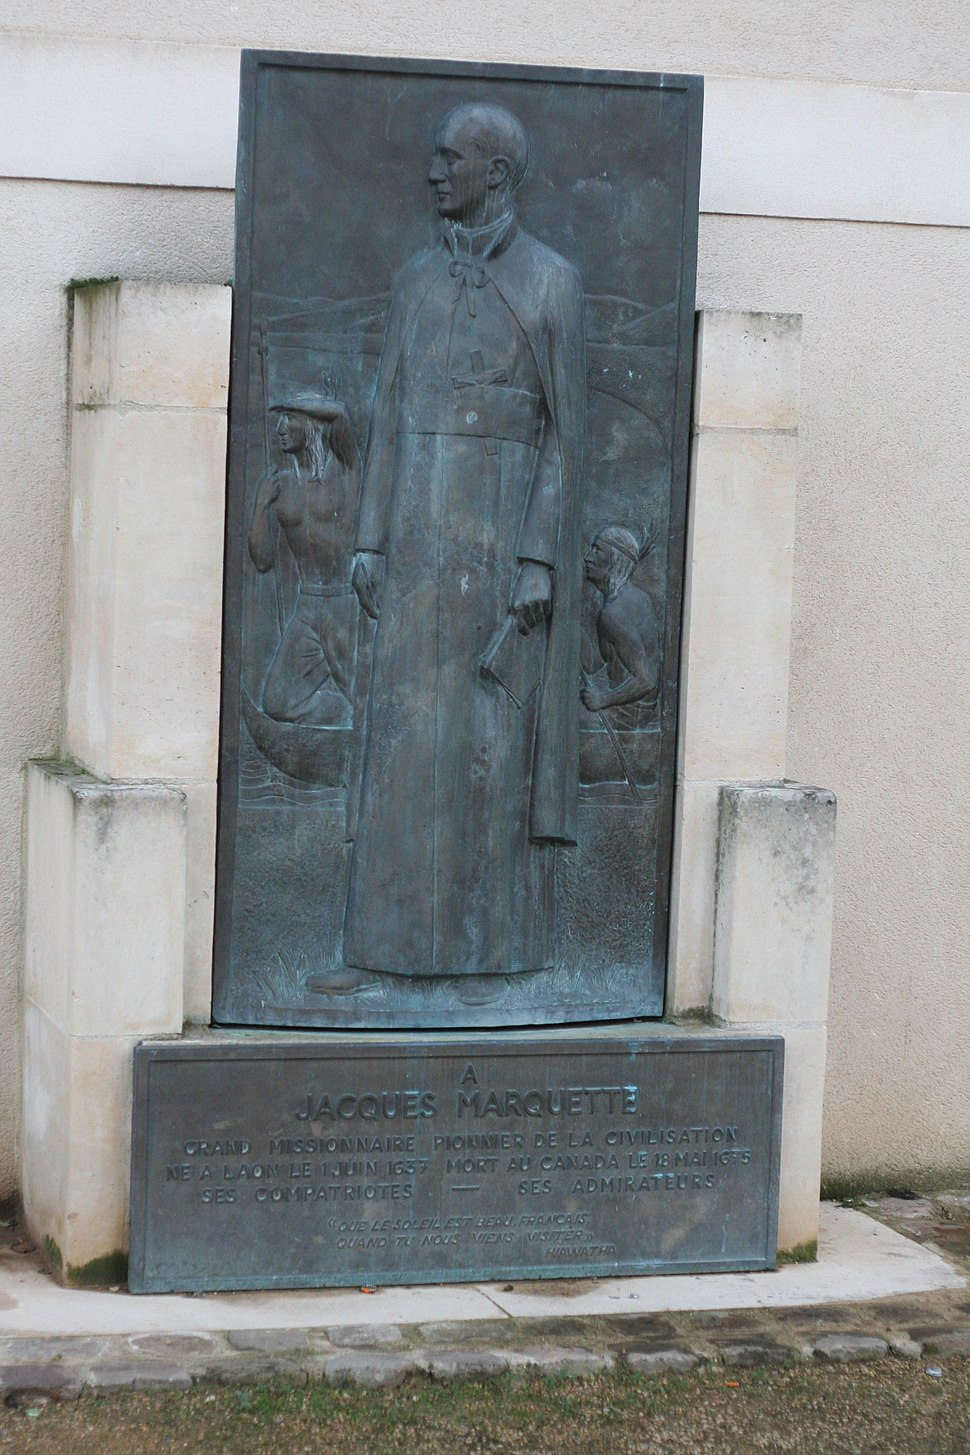 Jacques Marquette Memorial in Laon France 2007-12-01